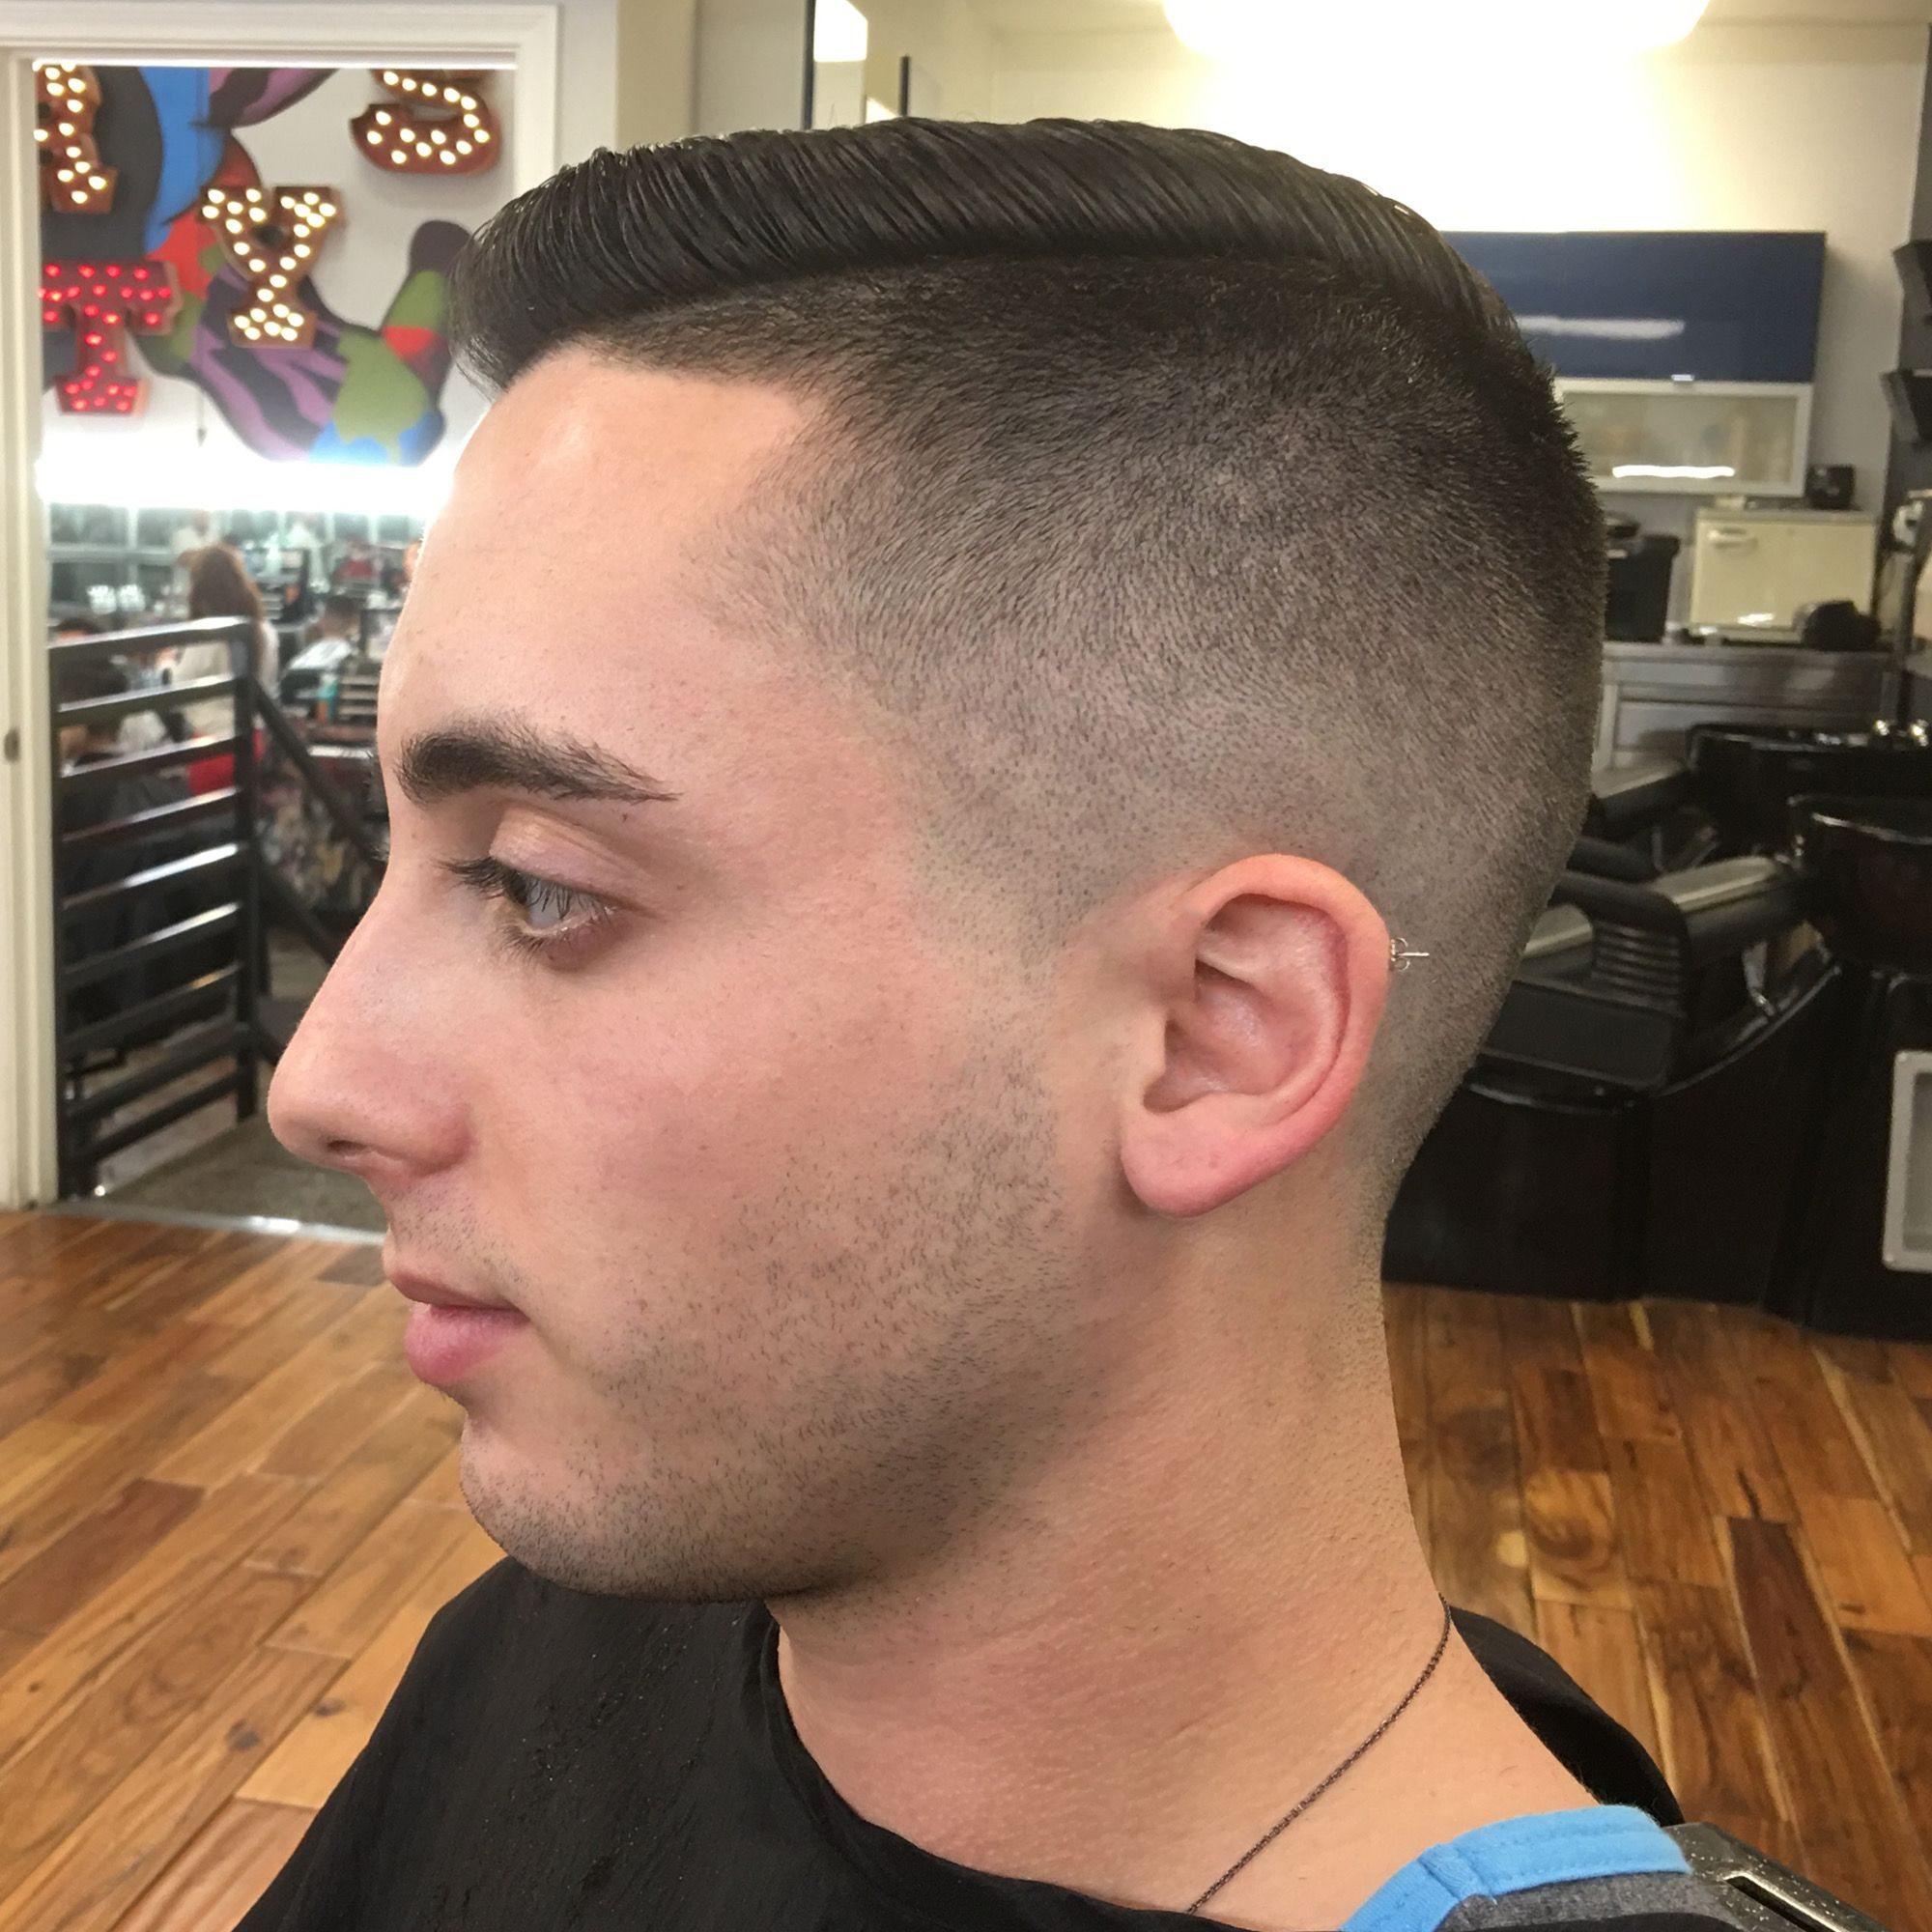 This medium skin fade was done with a razor about 1 3 the way up the